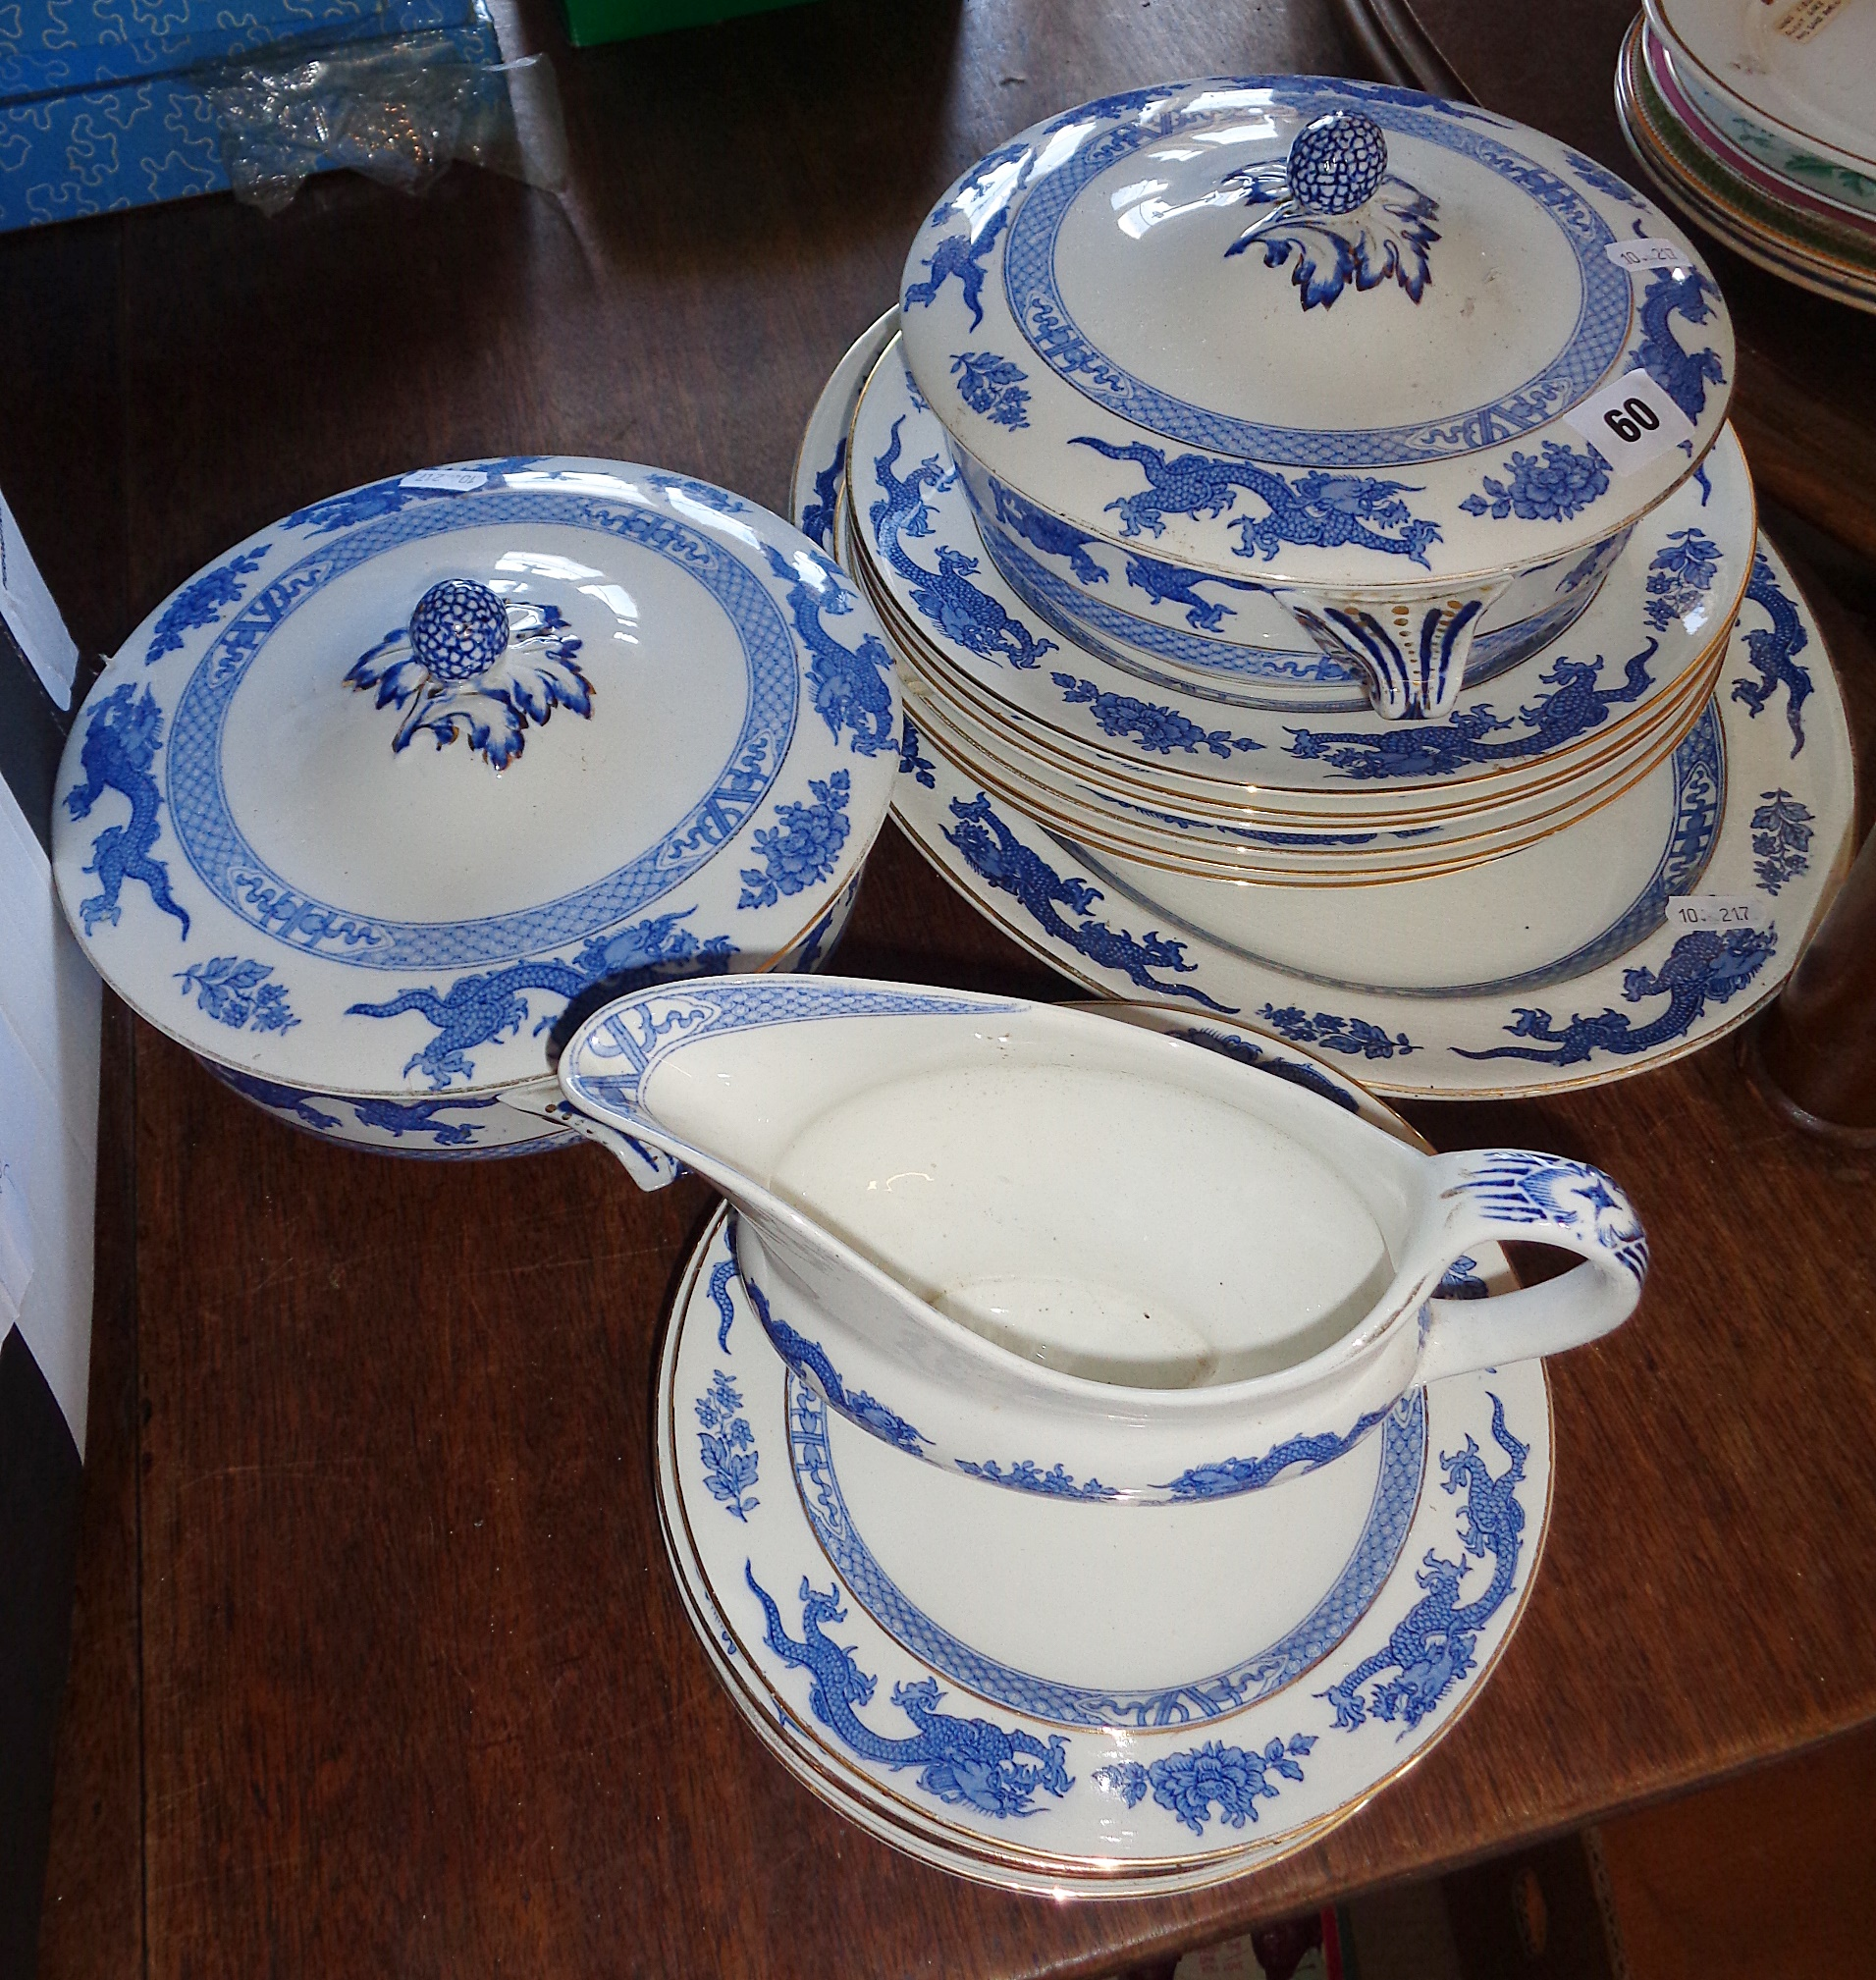 Lot 60 - Booths silicon china dinnerware, pattern no. 9780